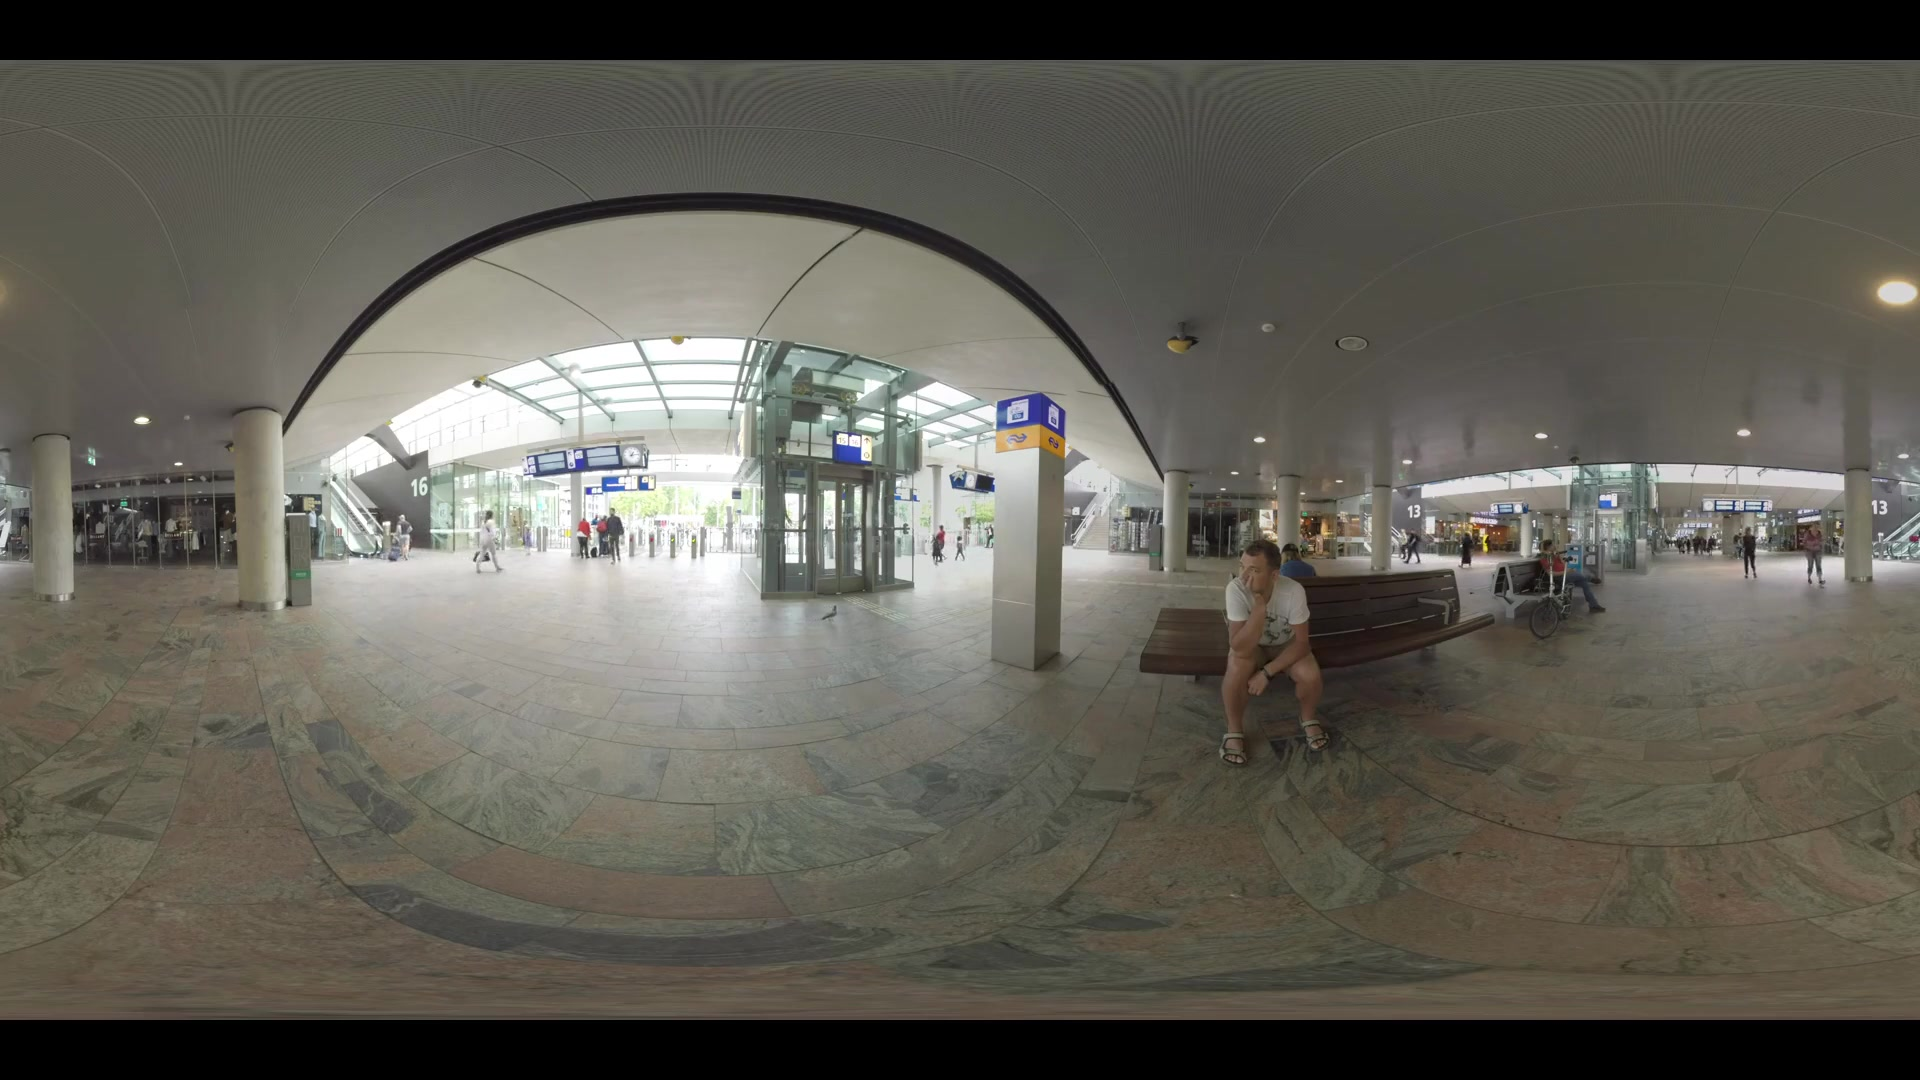 ROTTERDAM, NETHERLANDS - AUGUST 07, 2016: 360 VR video. View inside Rotterdam Centraal station. Hall with elevators, several escalators and people walking to the exit